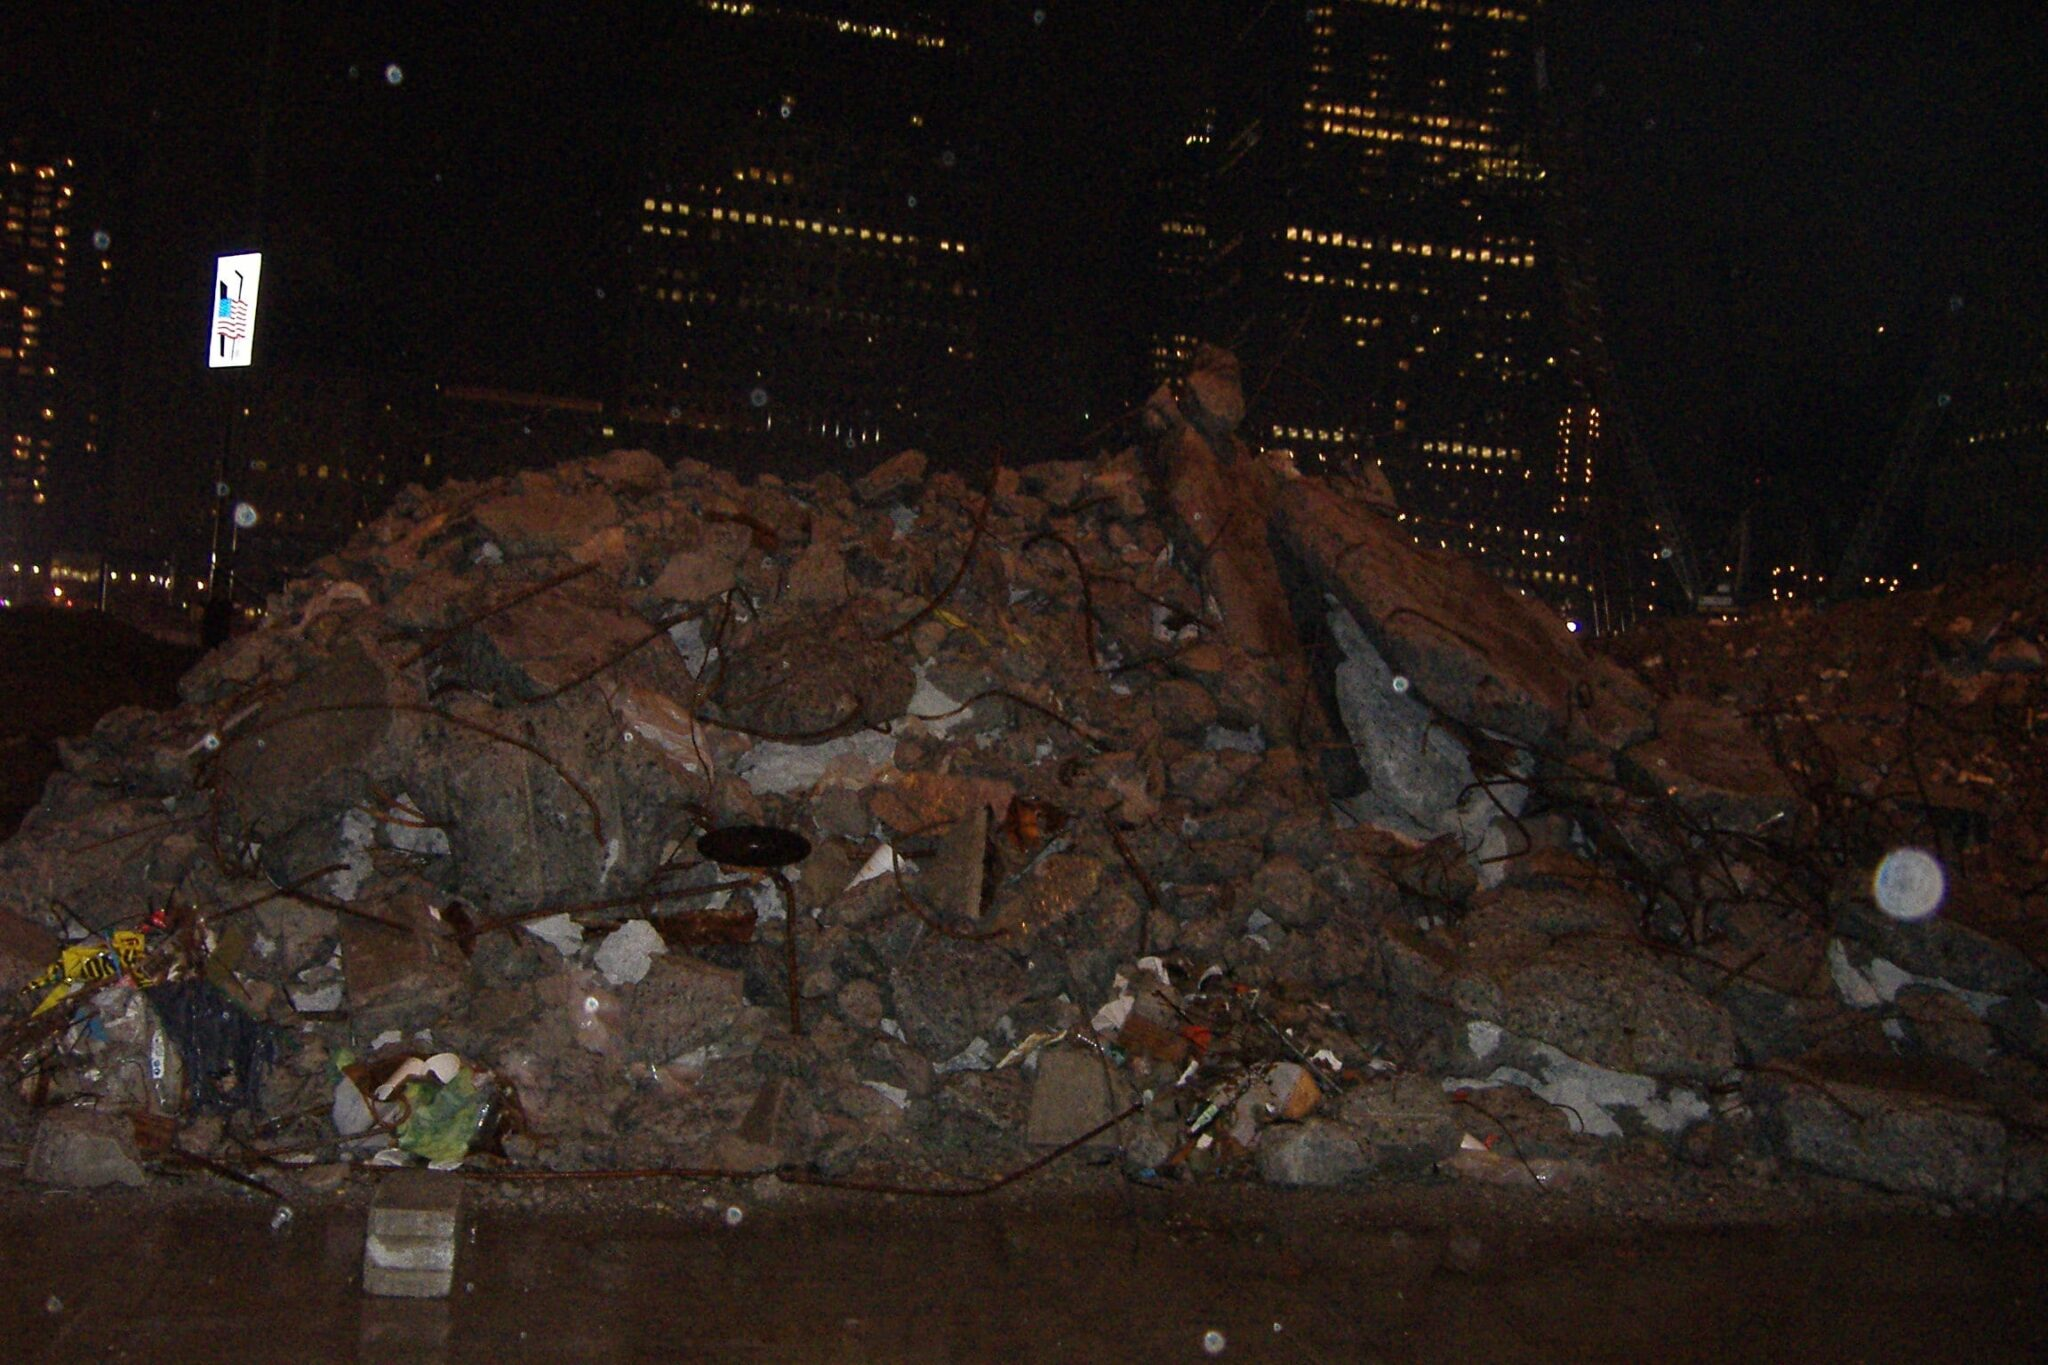 Rubble from the World Trade Center towers still not cleaned up six years after 9/11.